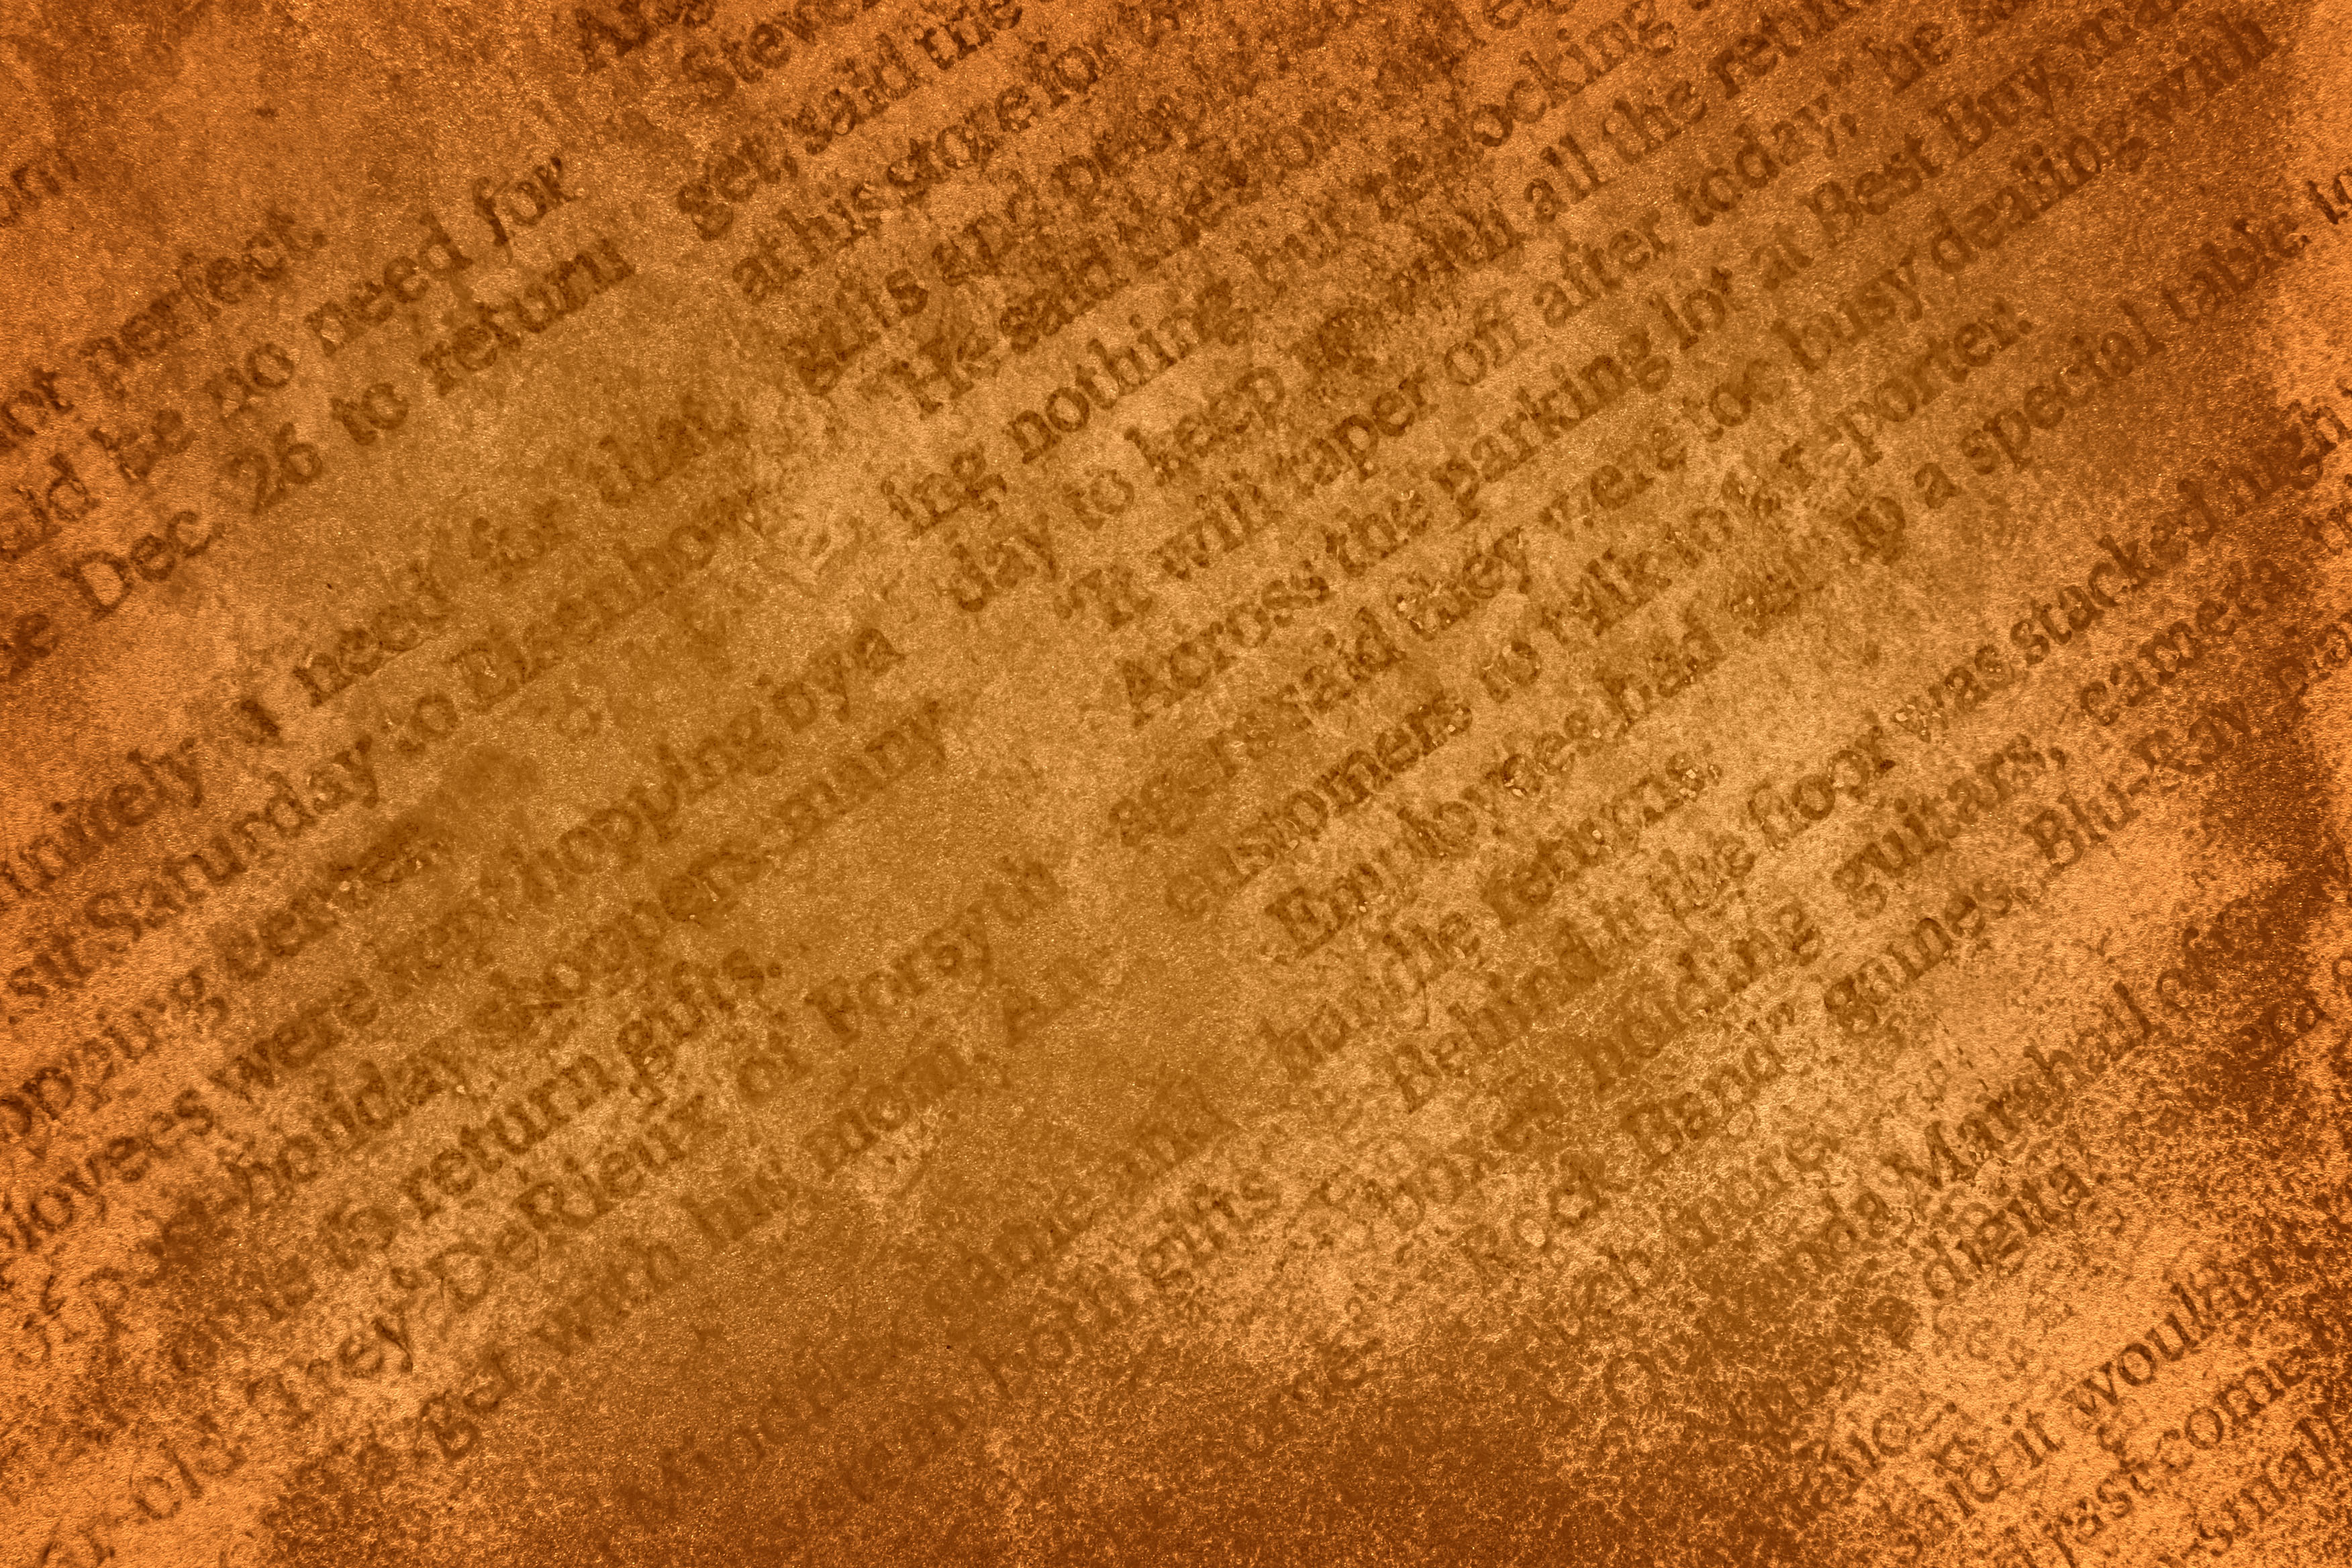 Old Newsprint Background | Abstract background created ...